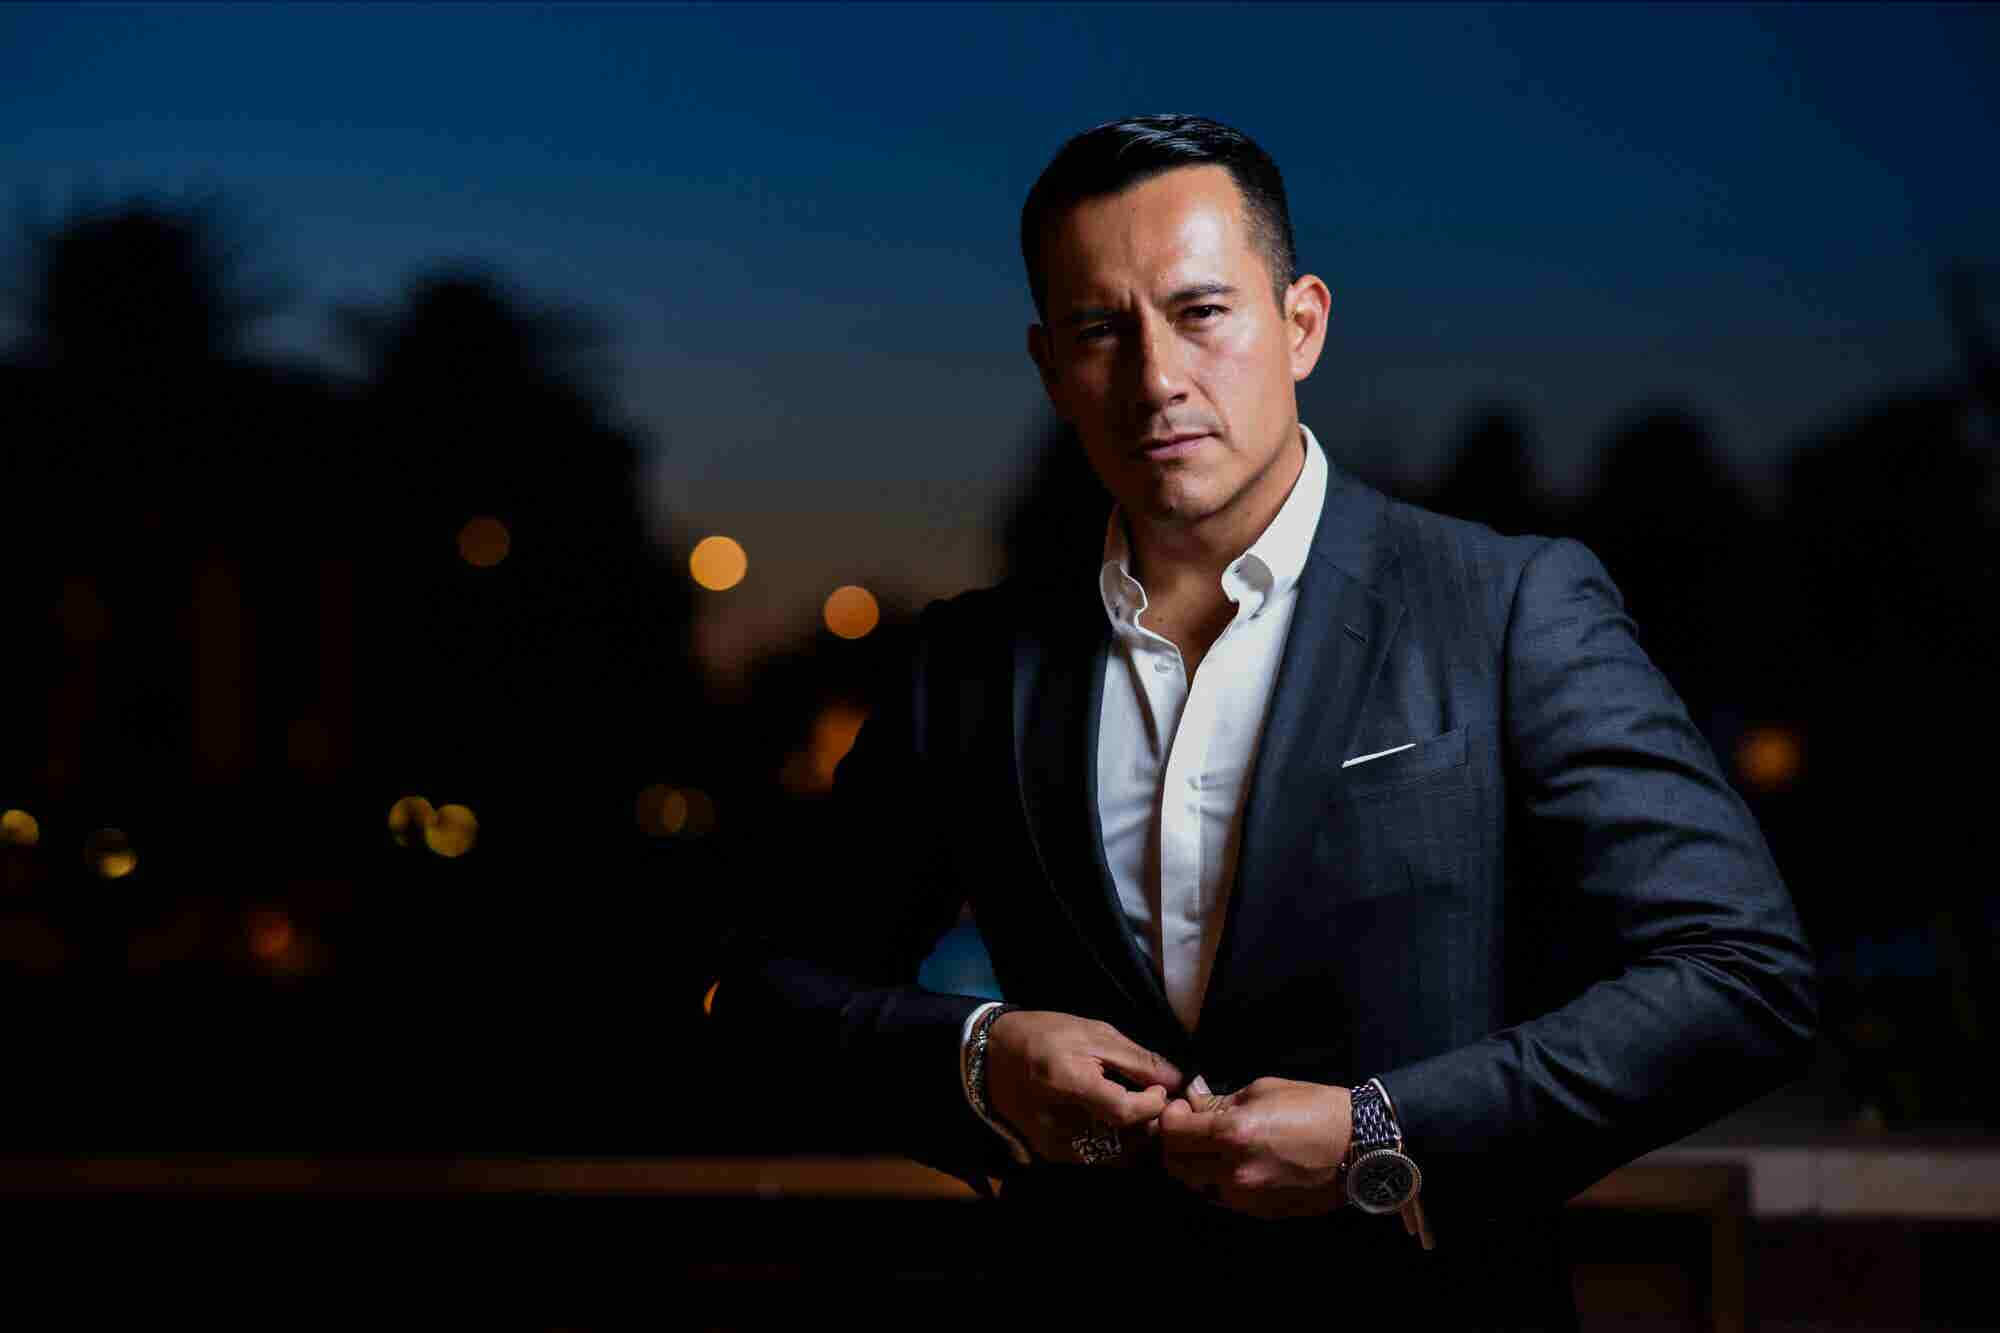 Raul Villacis' Journey From Midlife Crisis to Millionaire Mentor